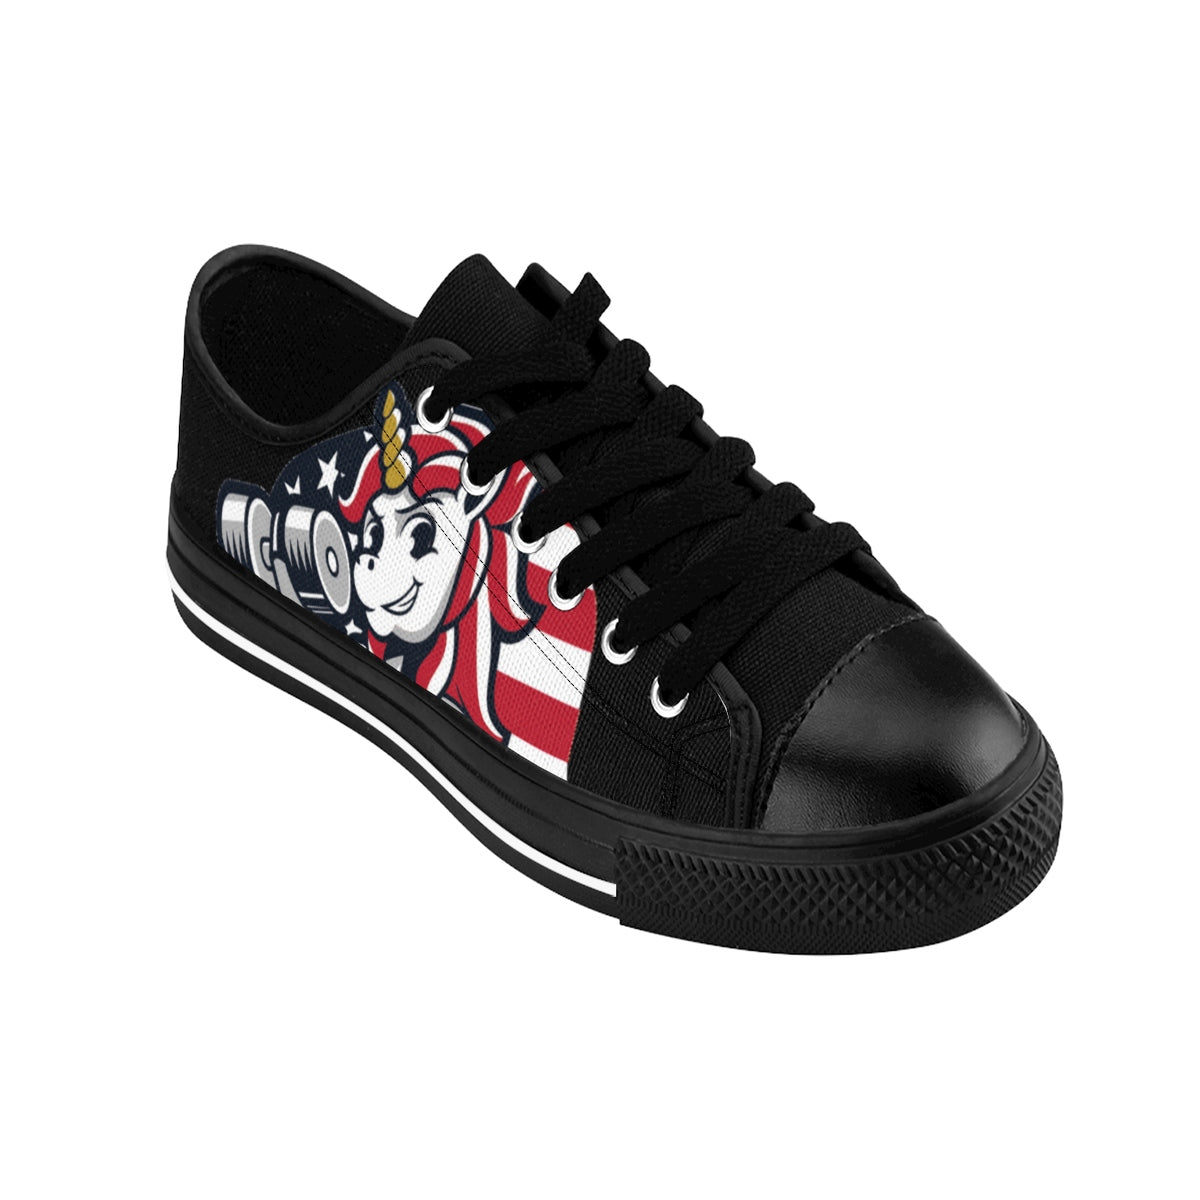 "American Unicorn Women's Sneakers The Ab Pro - Fit Family Apparel by Erick ""The Ab Pro"""